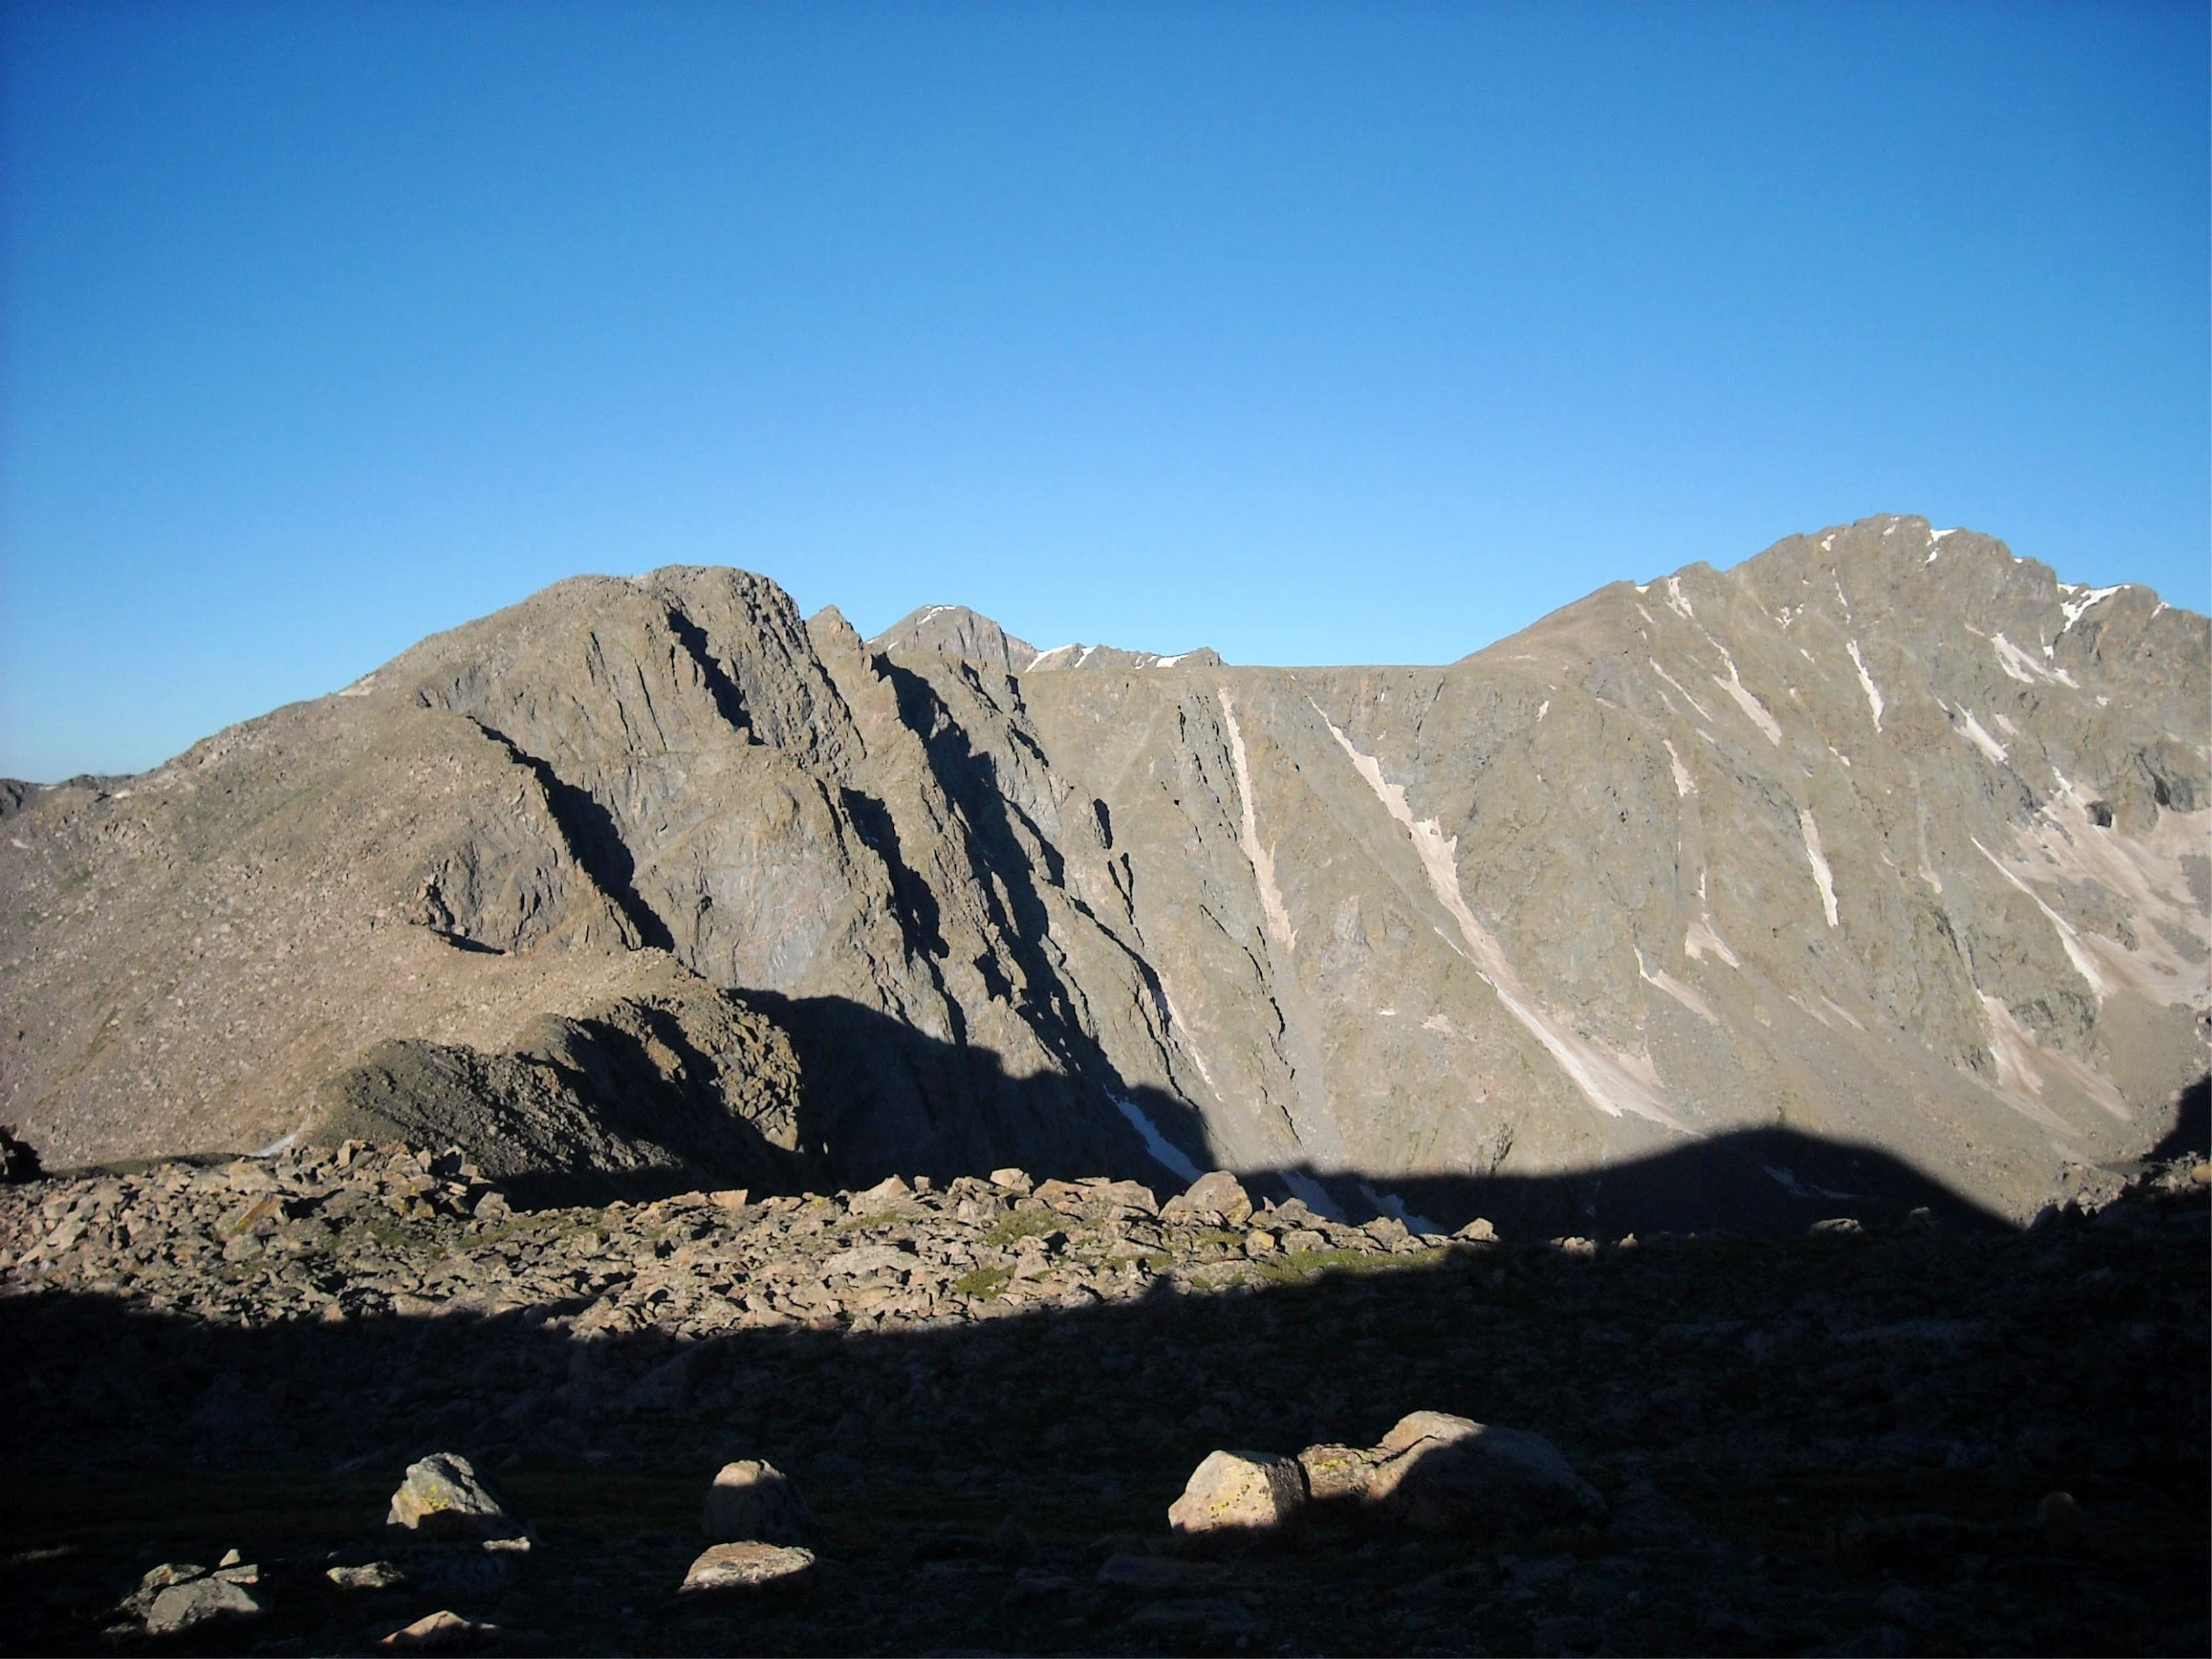 Holy Cross, Holy Cross Ridge (PT 13,831), & PT 13,248 - Solo Halo Ridge